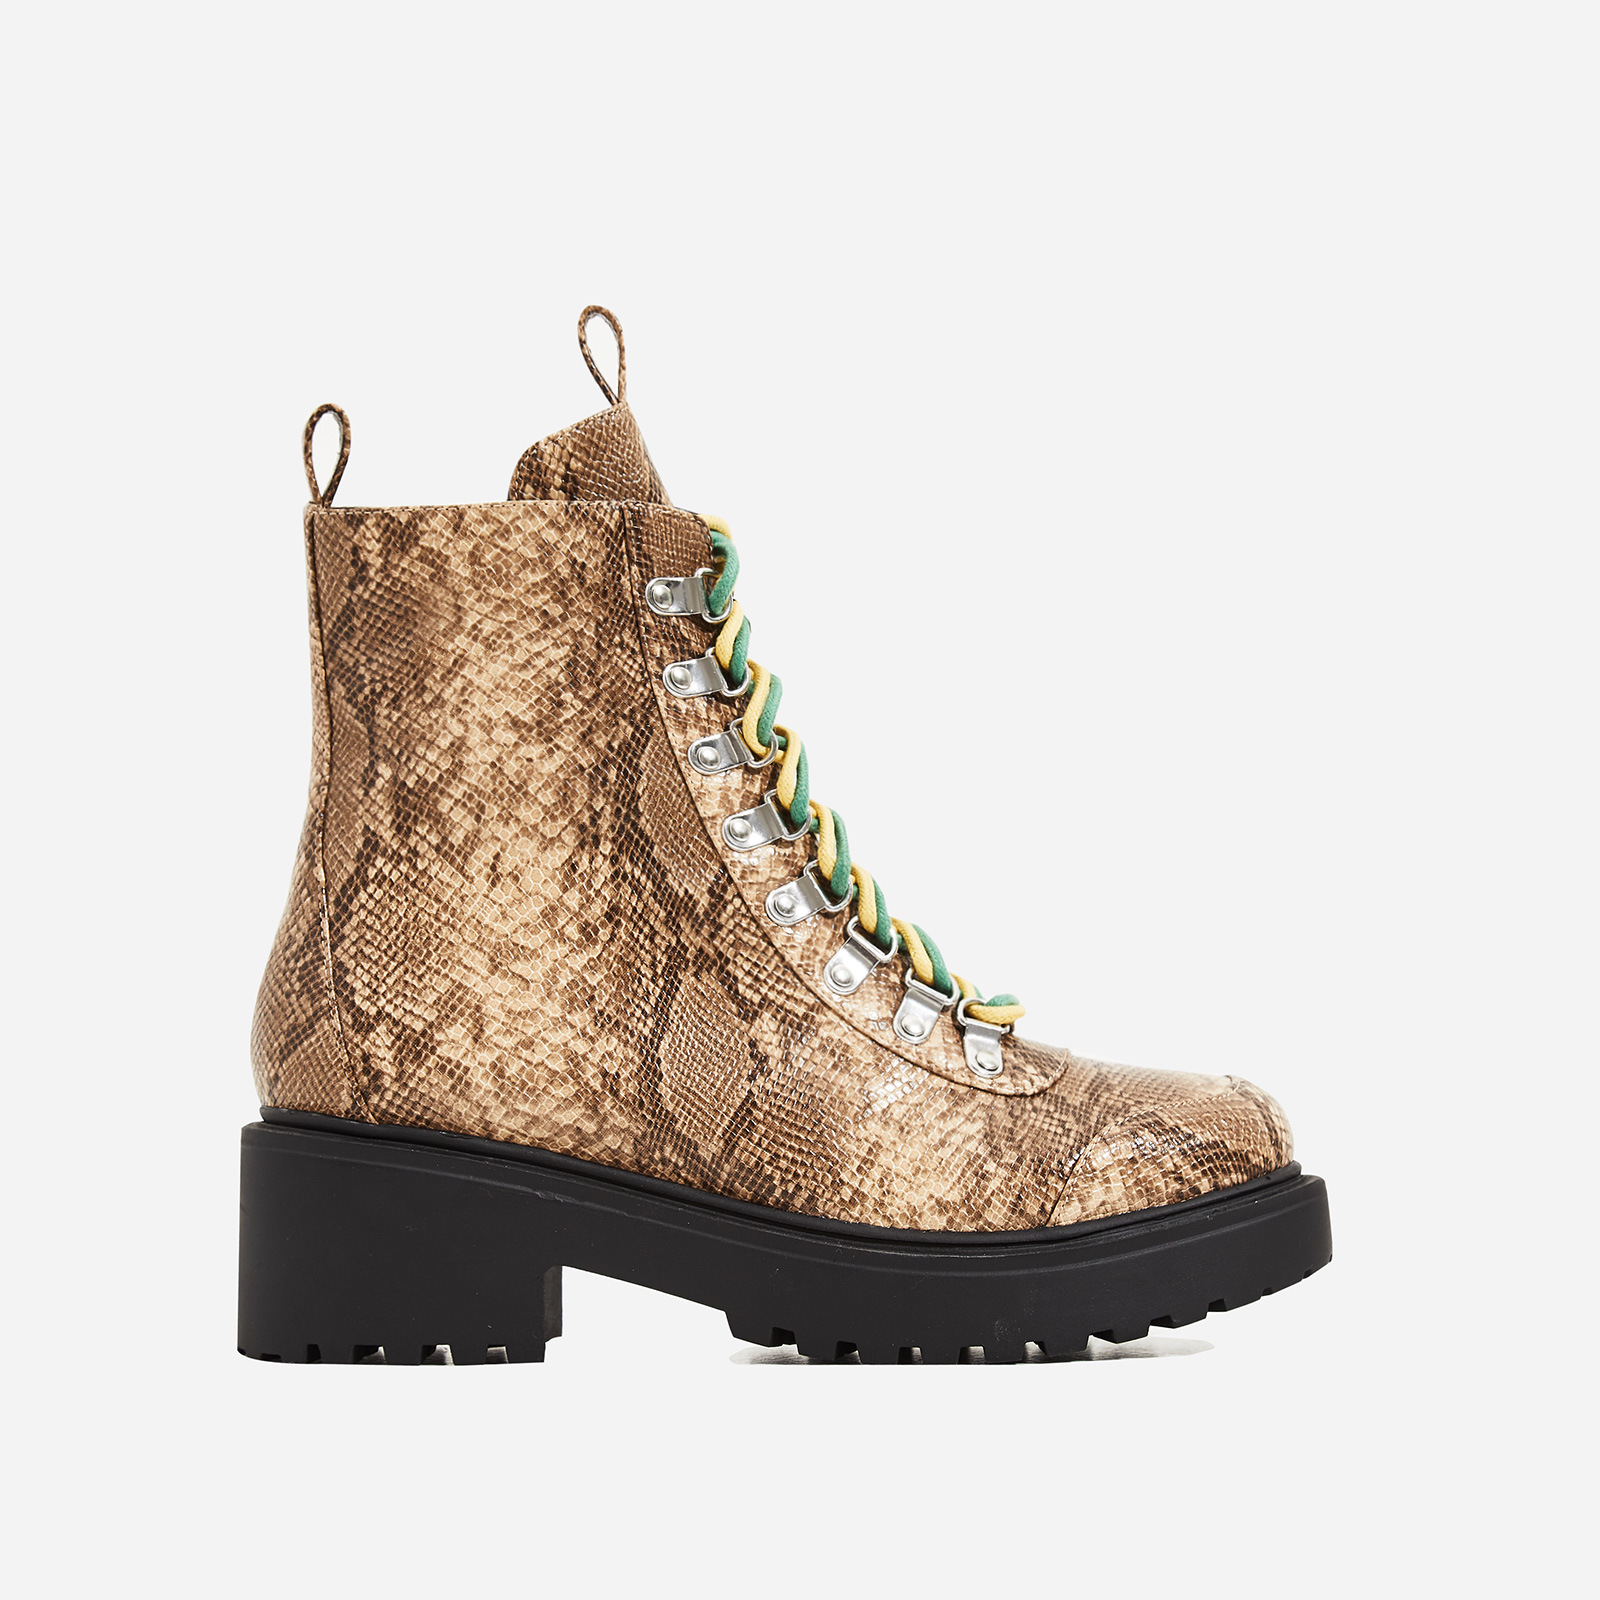 Kris Chunky Sole Lace Up Ankle Biker Boot In Nude Snake Print Faux Leather